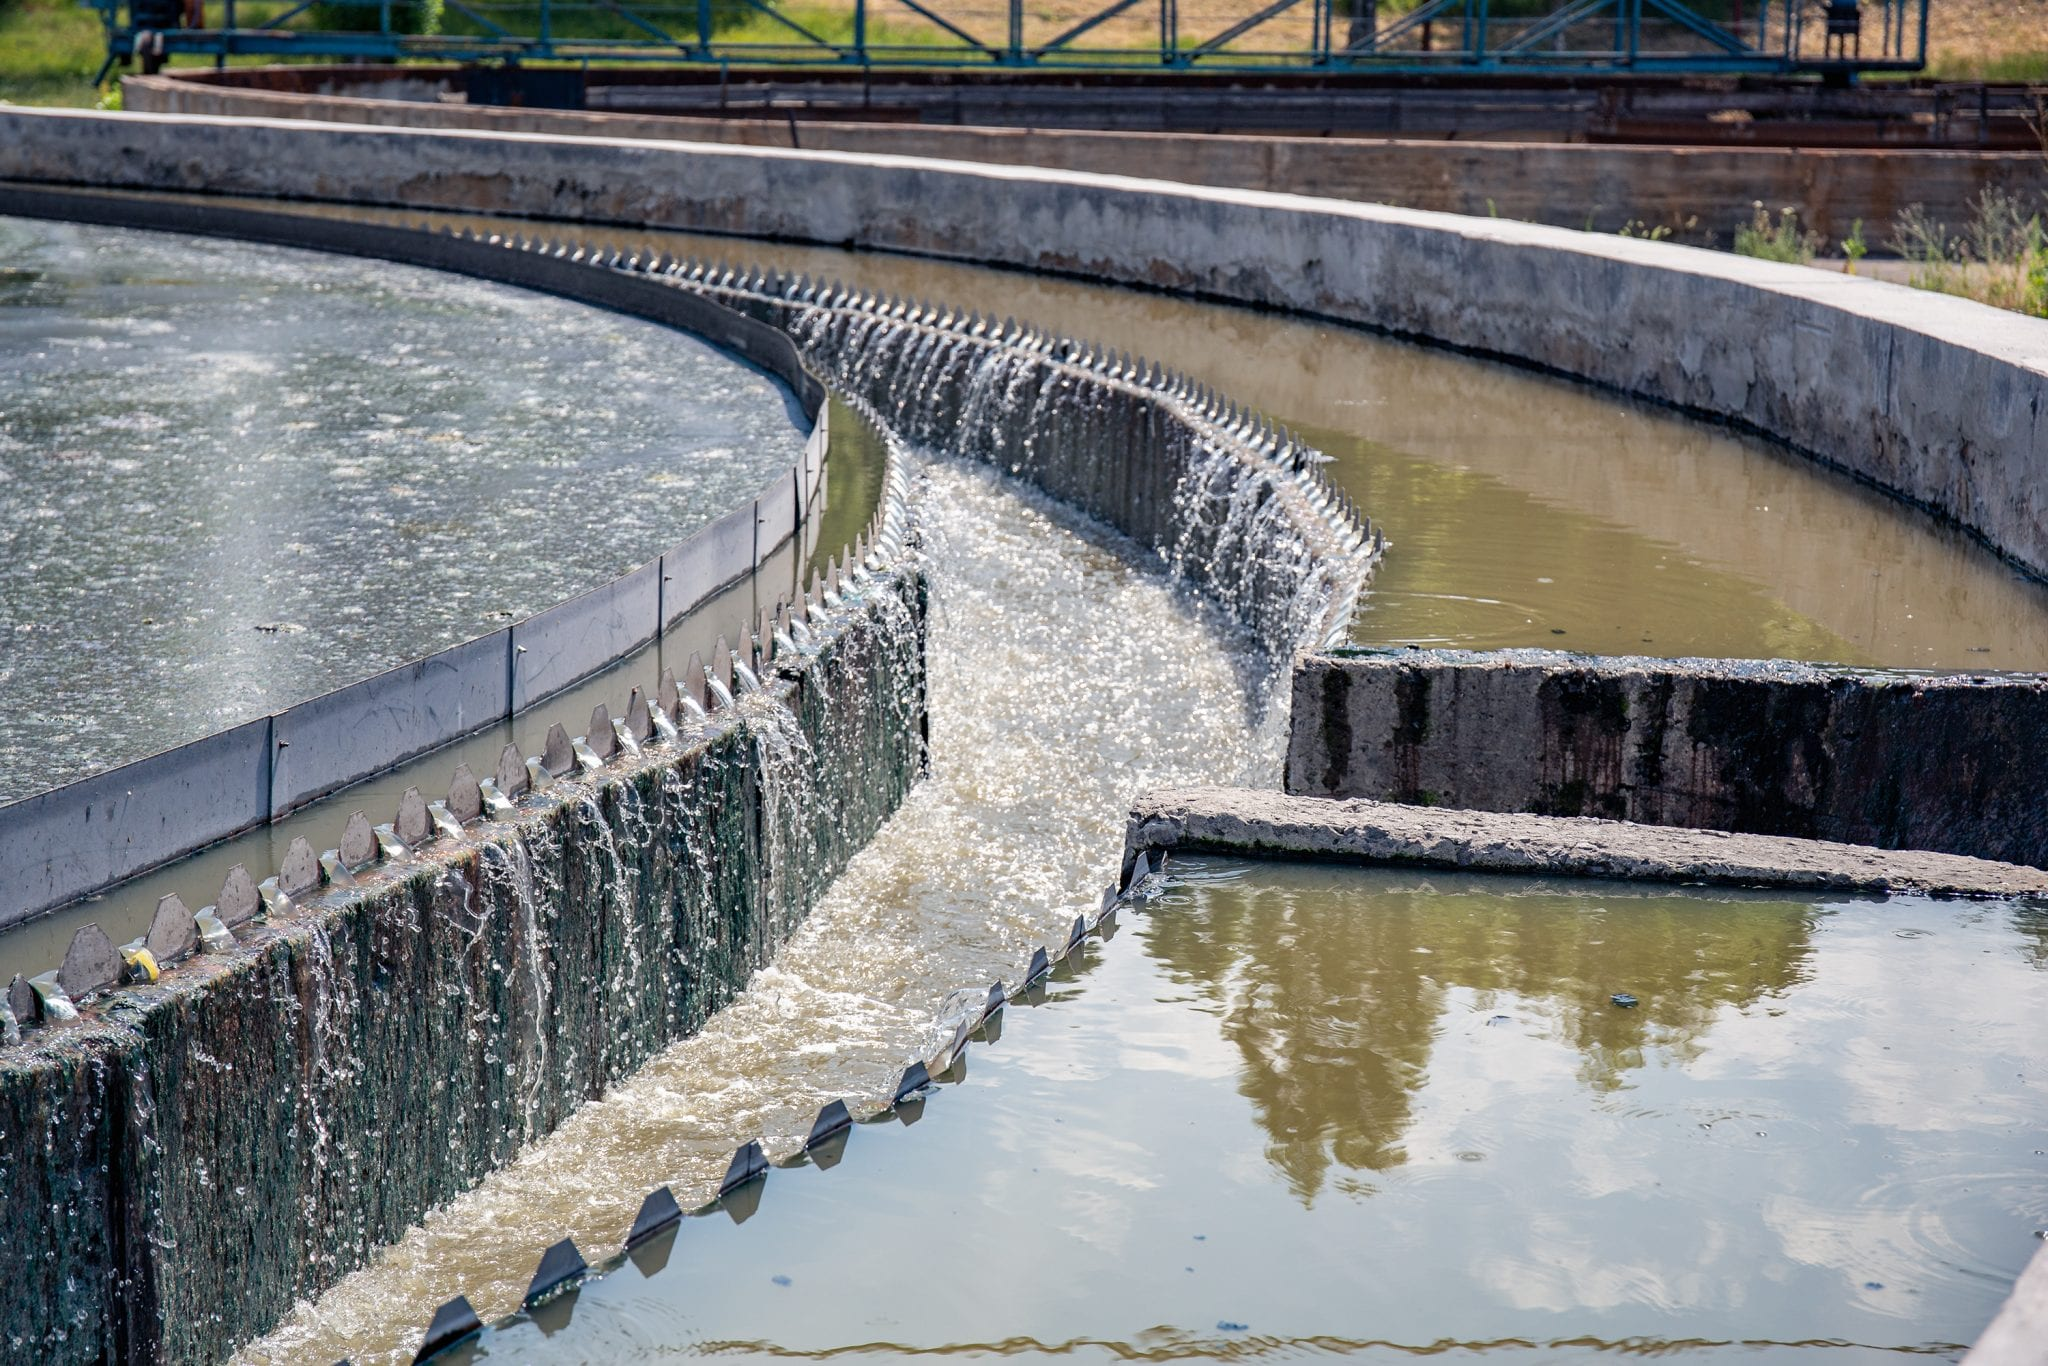 Modern urban wastewater and sewage treatment plant with aeration tanks, industrial water recycling and purification.